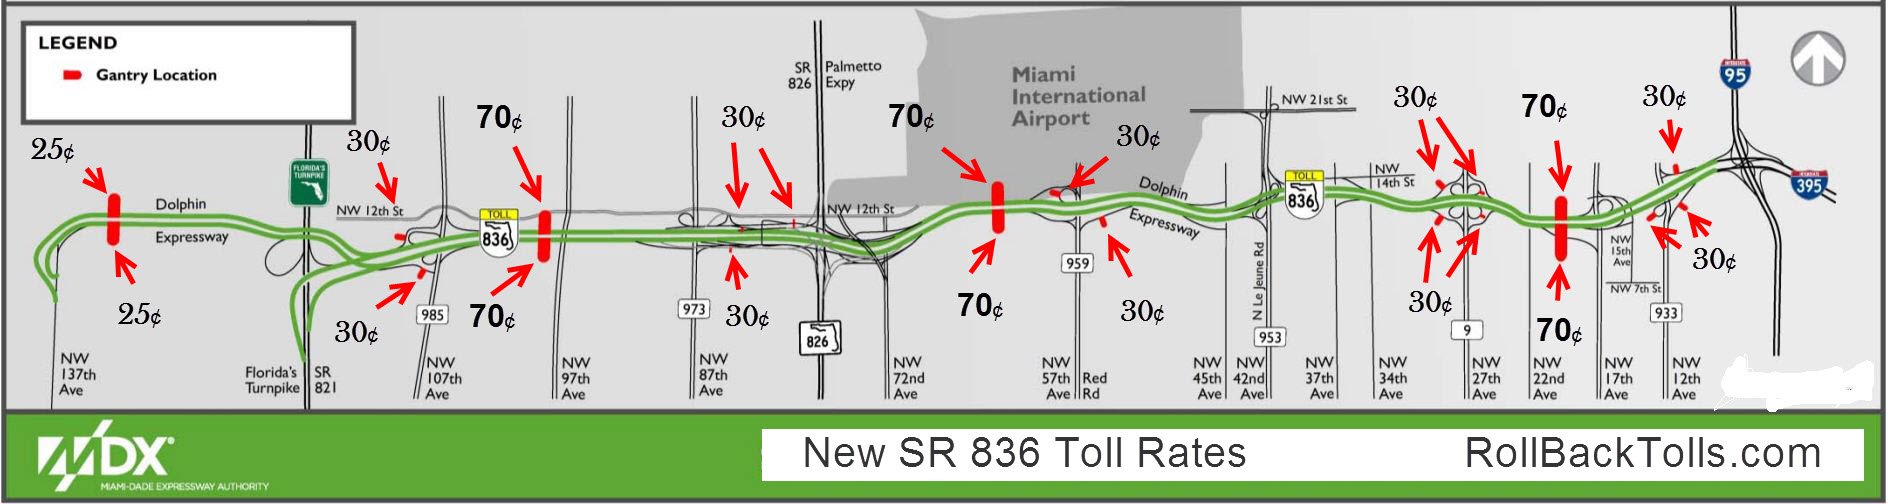 new SR 836 toll rates